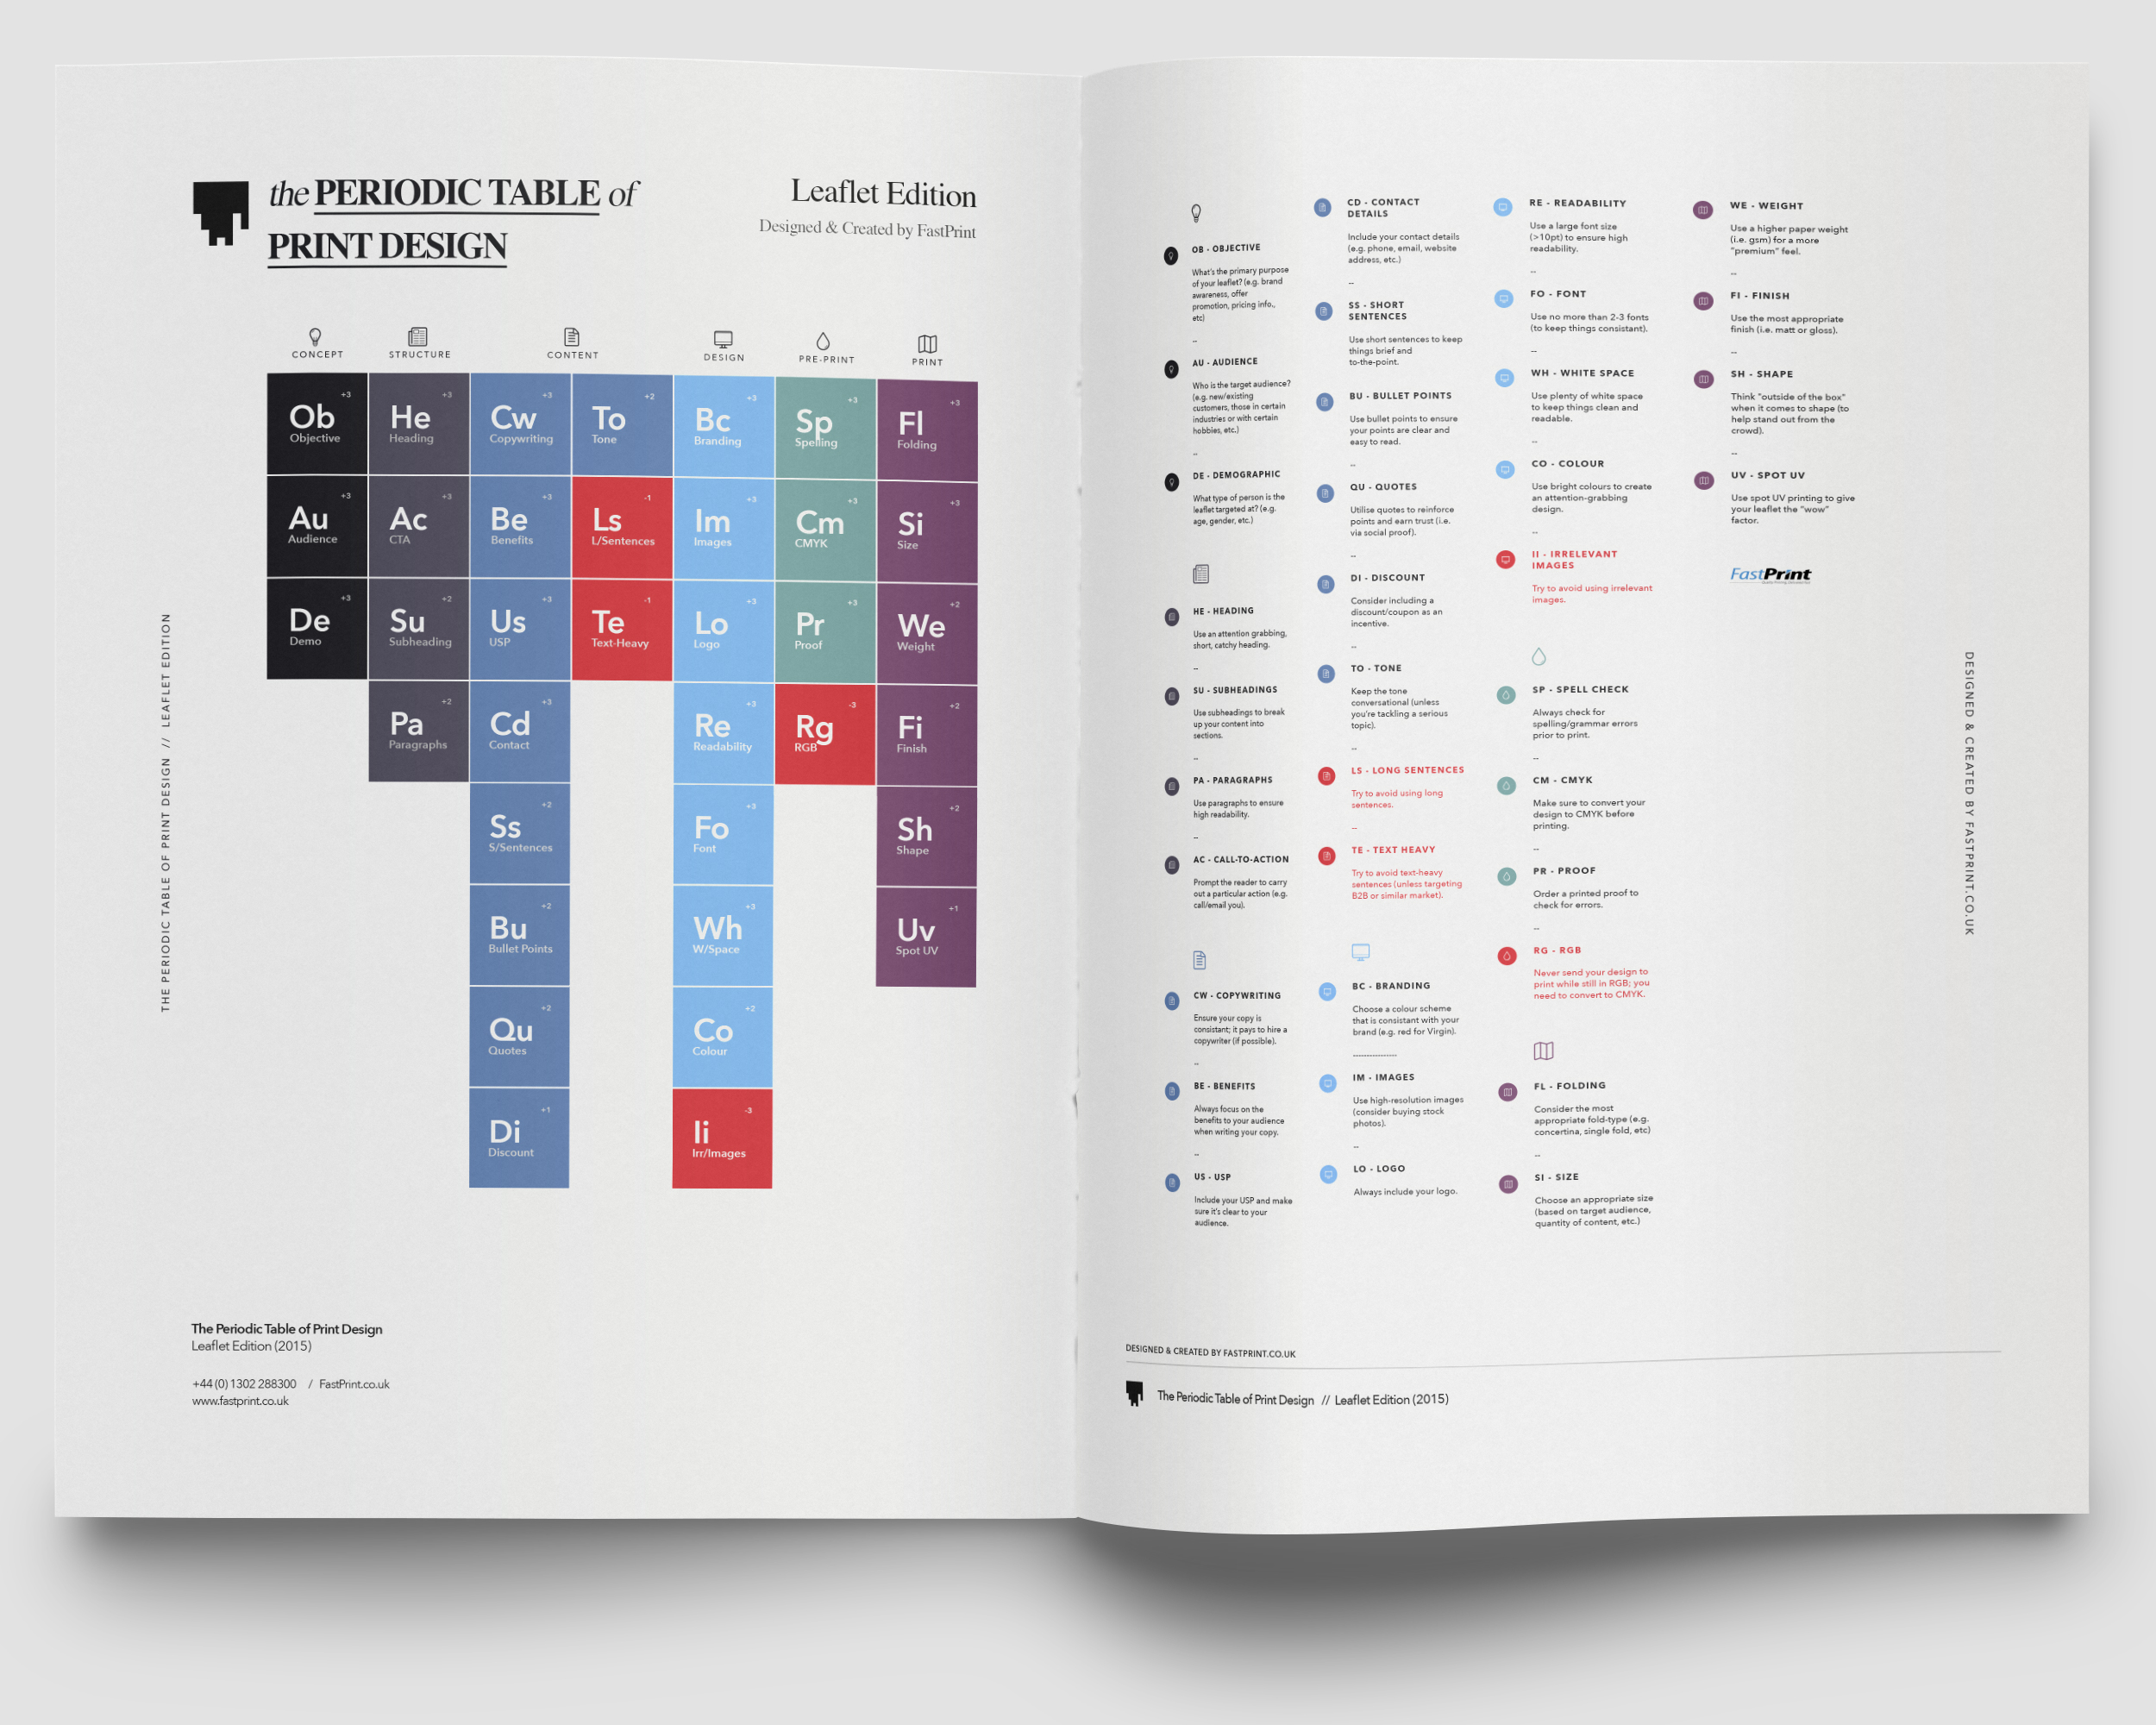 The Periodic Table Of Print Design Leaflet Edition 2008 Trailblazer Wiring 24 Pin Diagrams Click To Enlarge